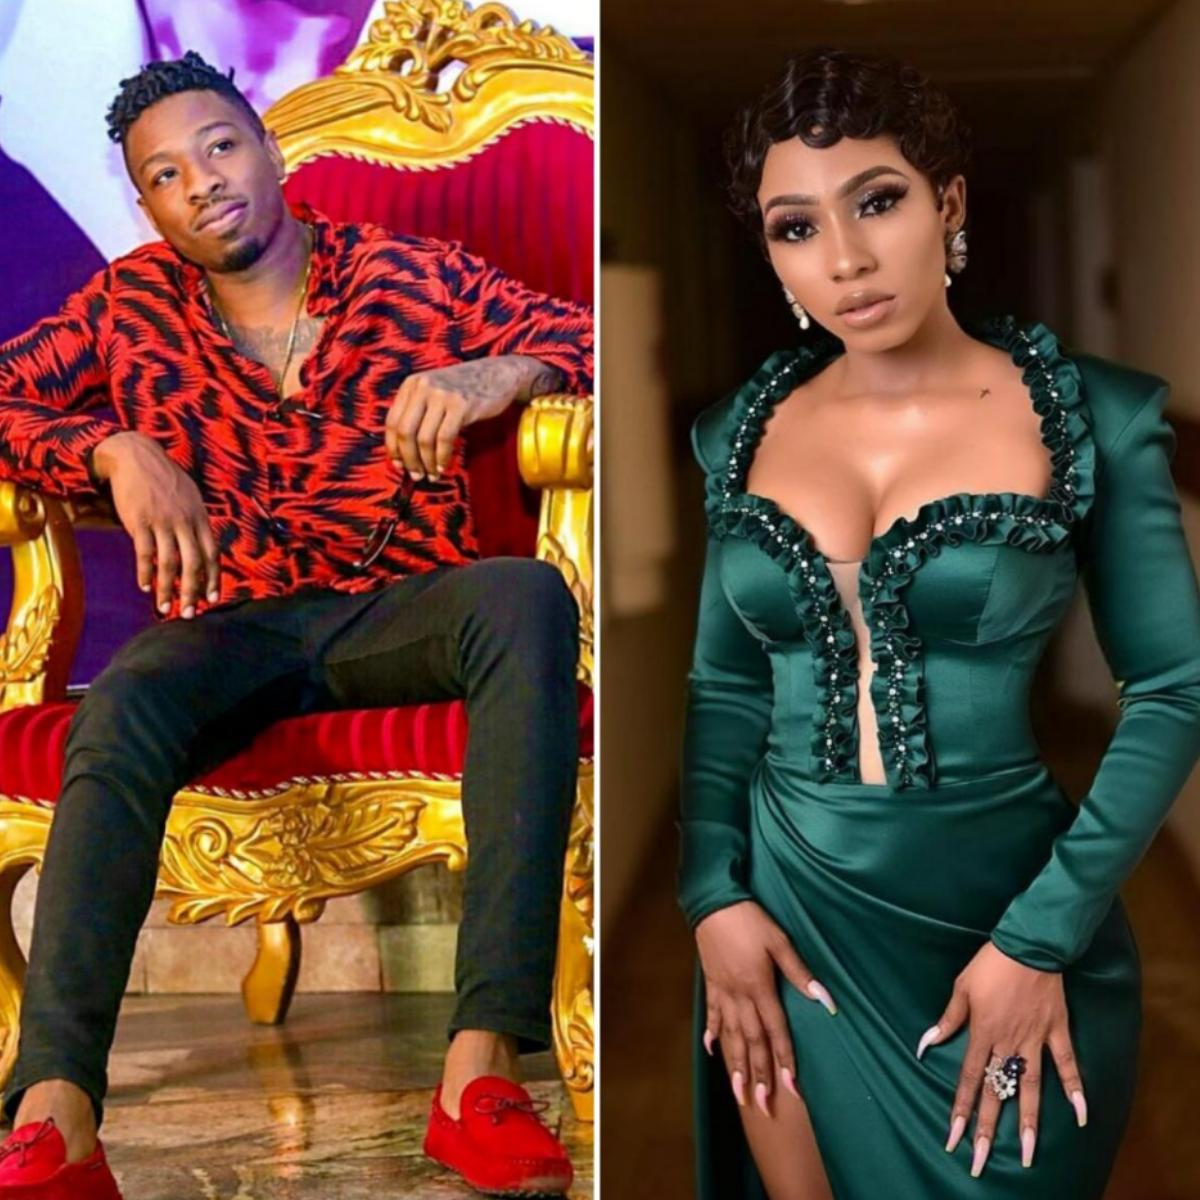 Why Nigerians Doubt Mercy Eke And Ike Relationship